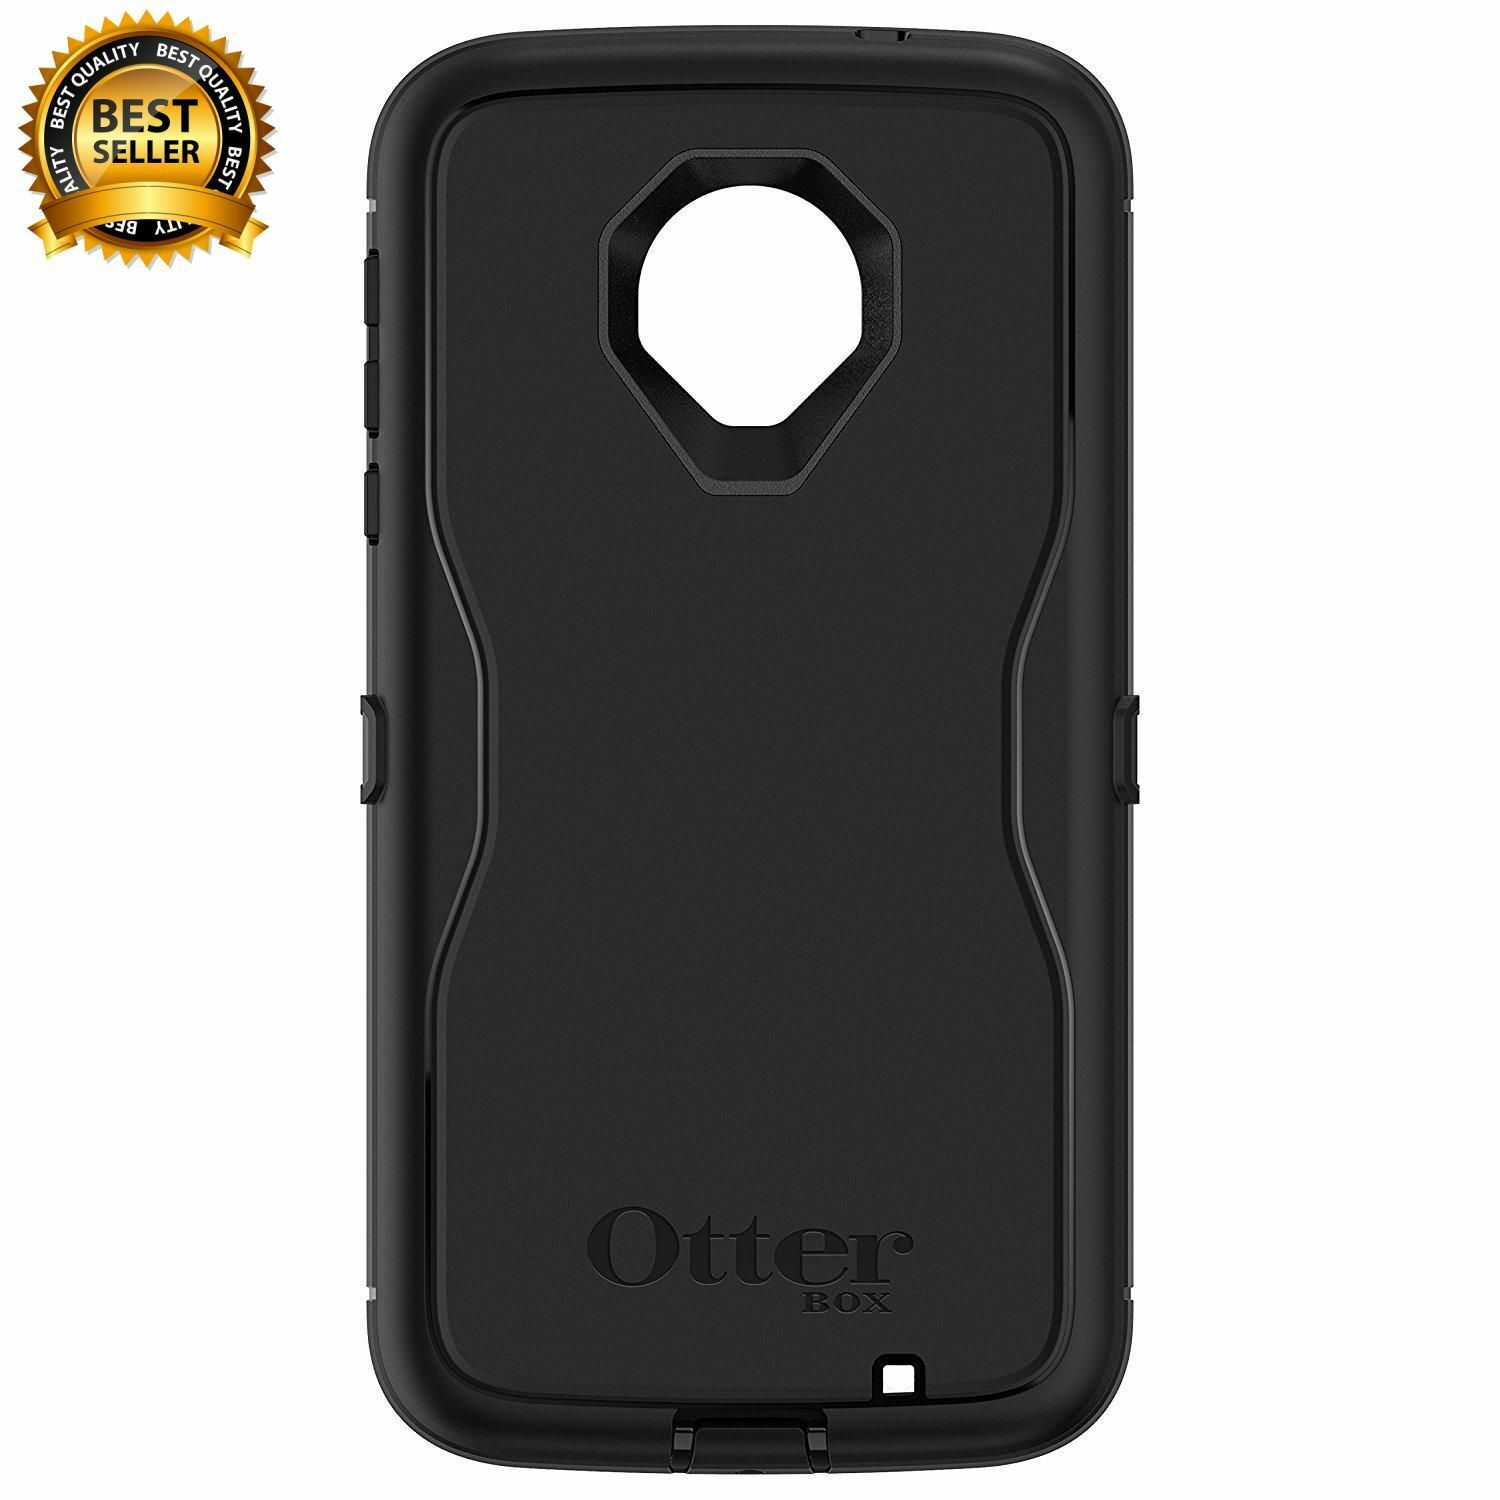 low priced 2716d ffda1 Details about Motorola Moto Z Force Droid Case Belt Clip Holster Port Cover  Scratch Protection